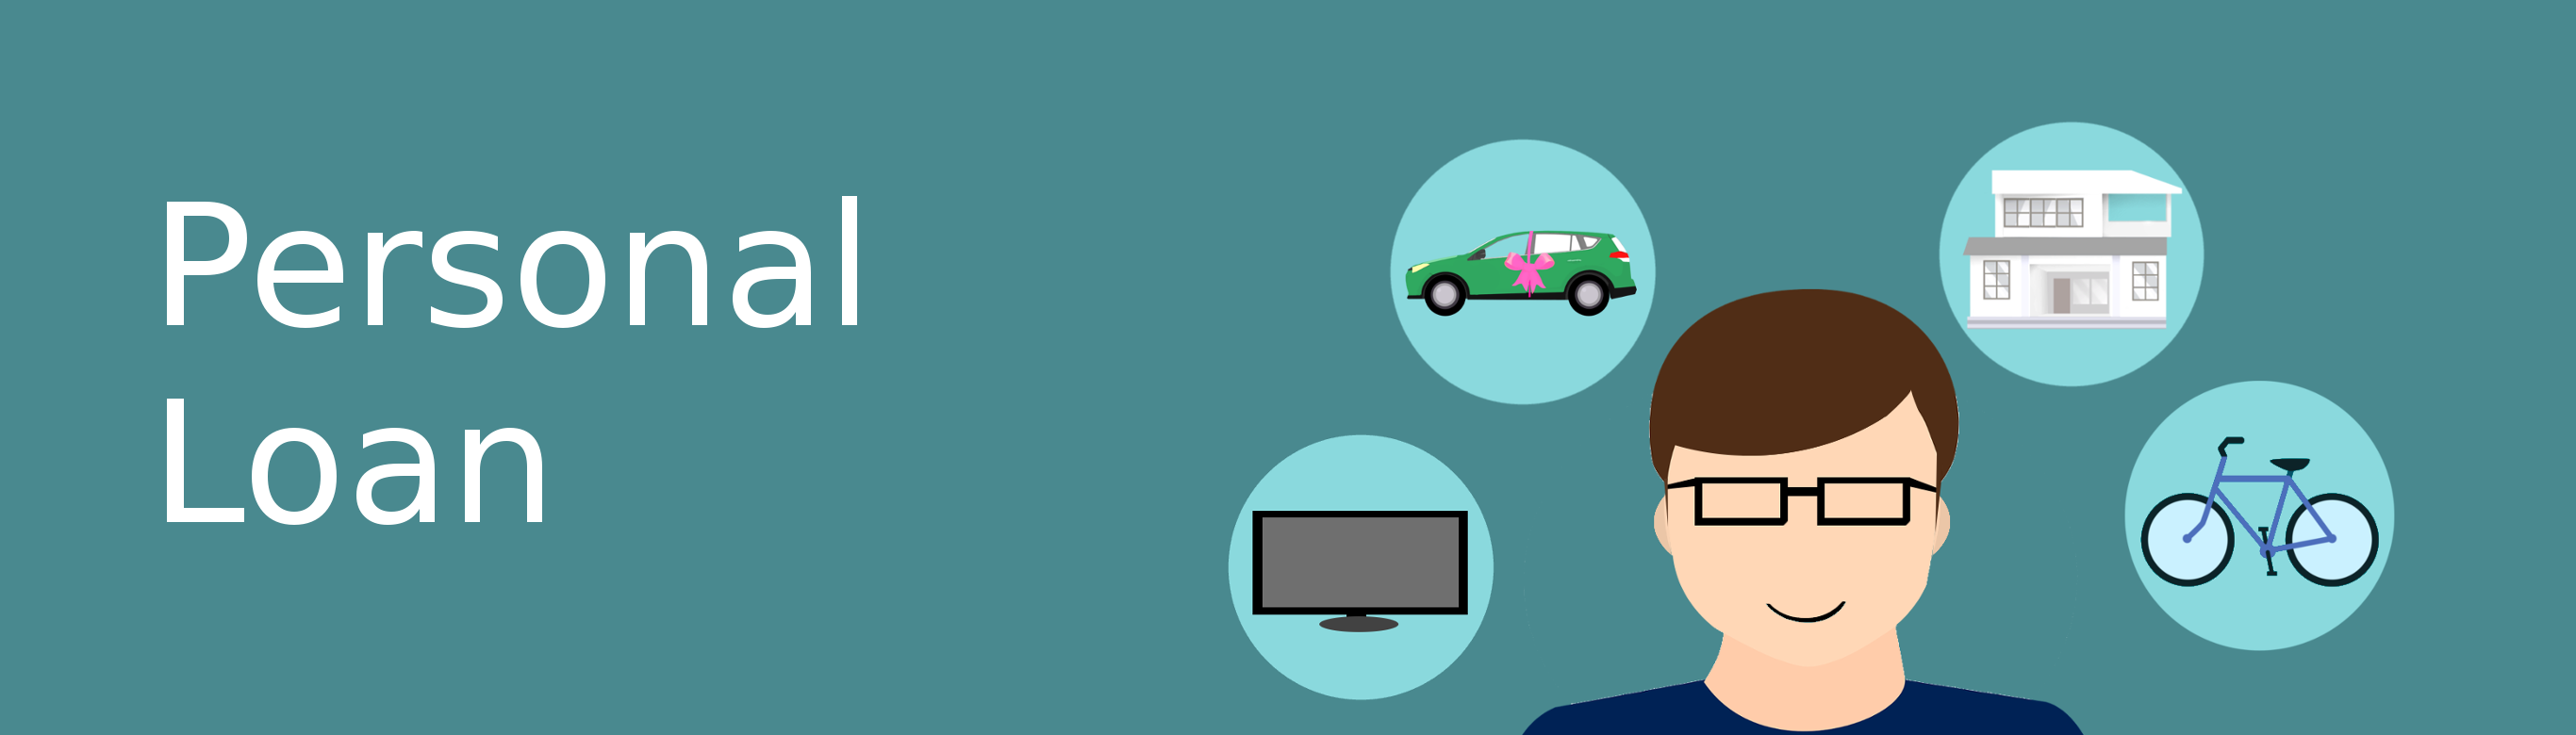 Ilustratin of a bicycle, car, house, computer monitor and man in glasses depisctimg multiuse of a personal loan